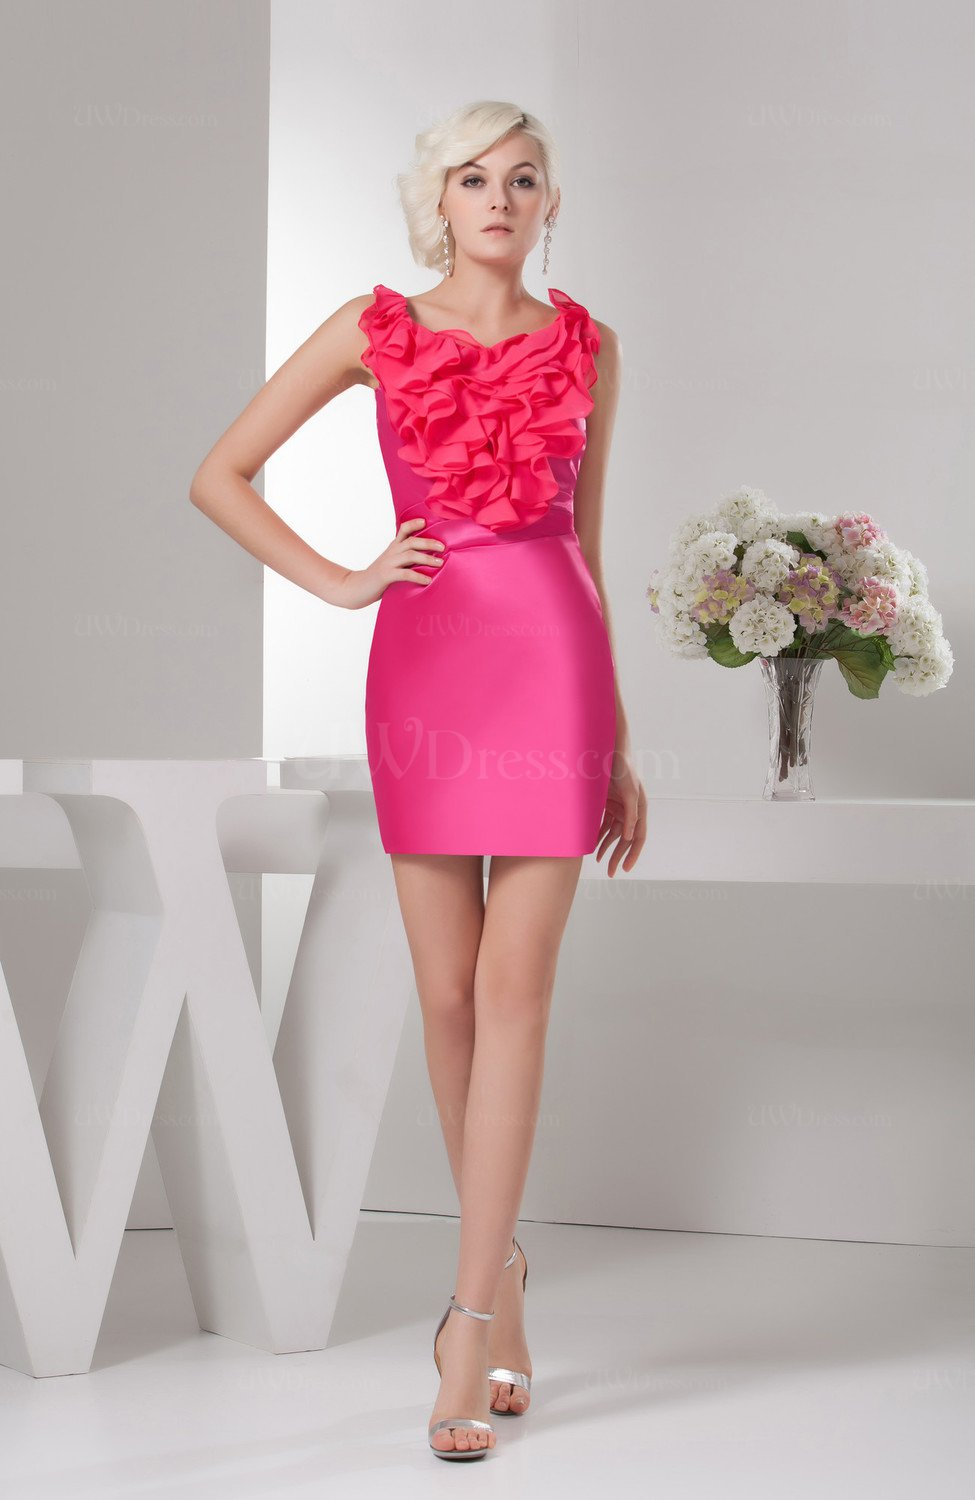 Hot Pink Short Party Dress Inexpensive Dream Natural Tight Mini ...